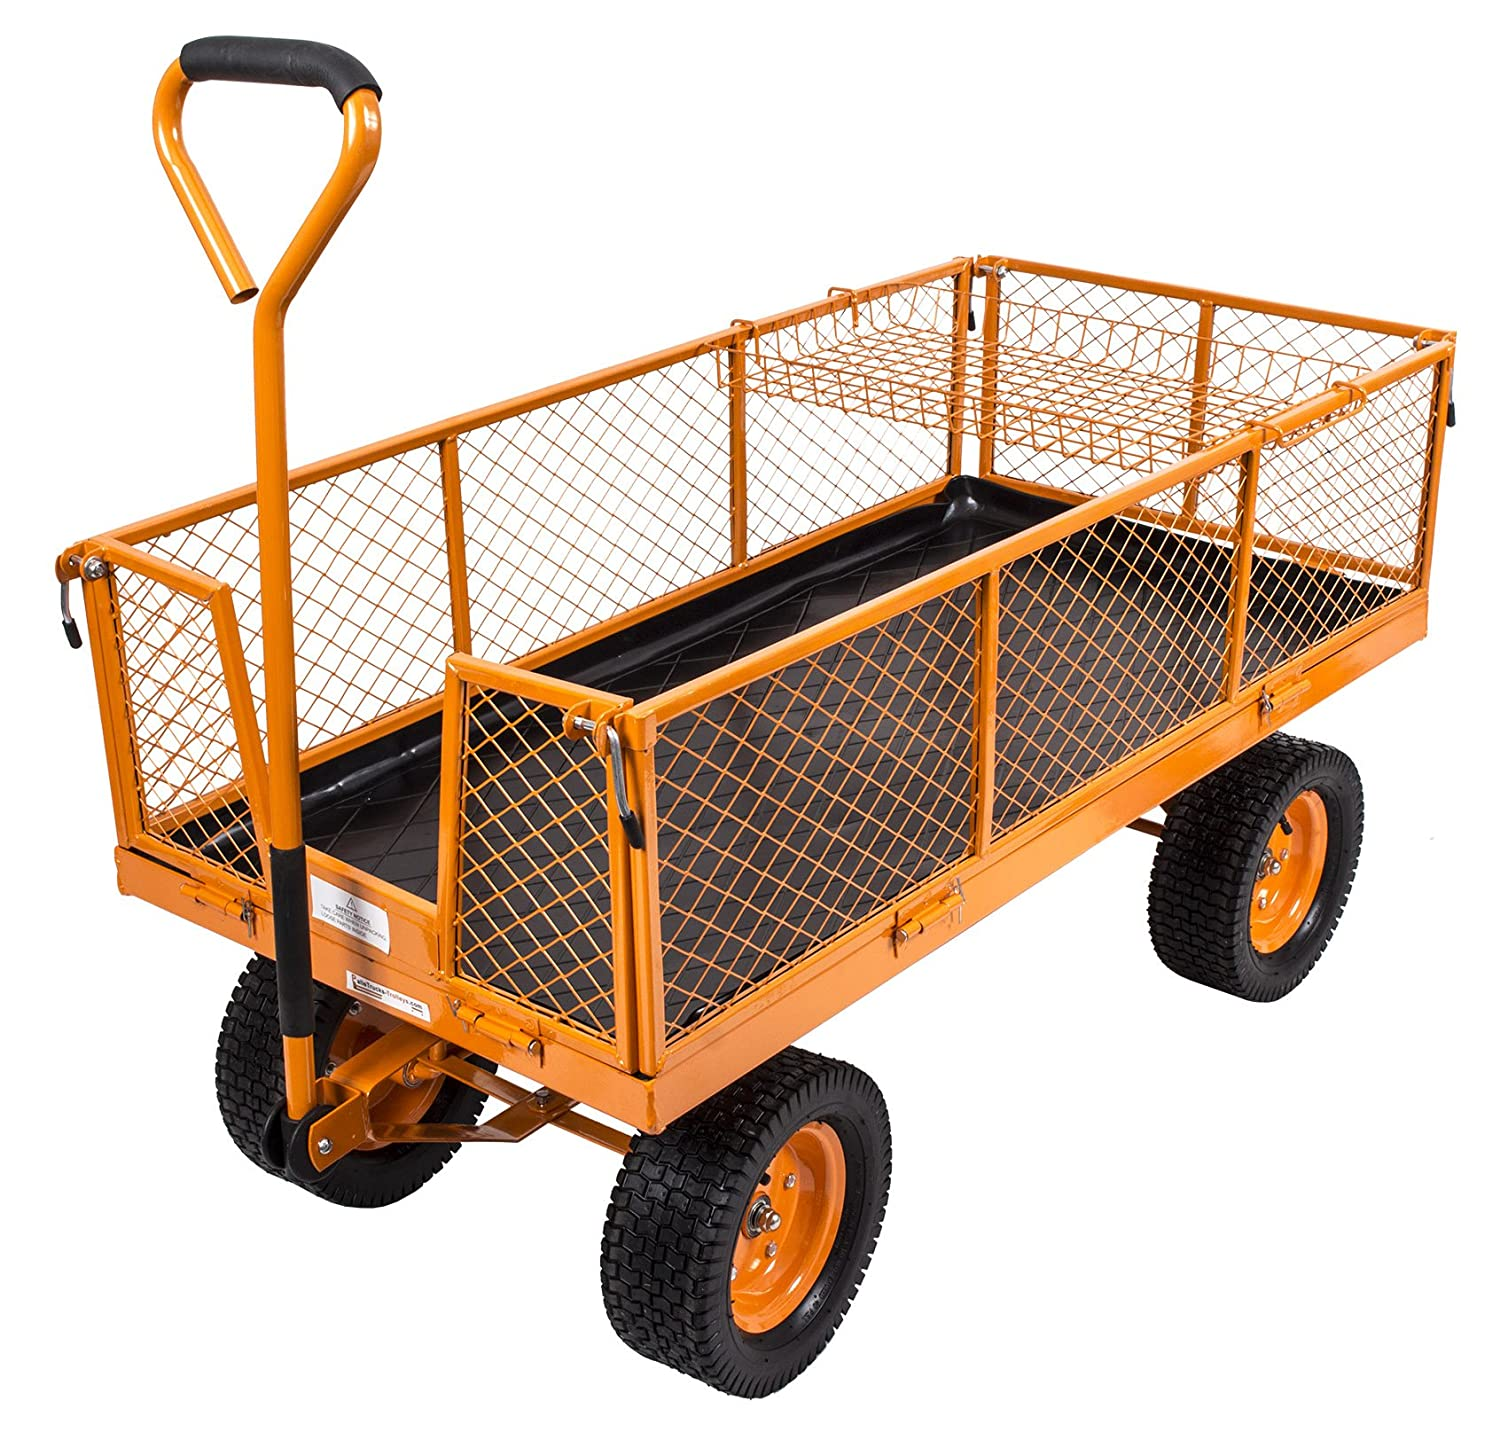 300kg Heavy Duty Mesh Garden Utility Festival Cart Mesh Hand Trolley Truck Barrow Wagon Trailer with Pneumatic Wheels SafetyLiftinGear